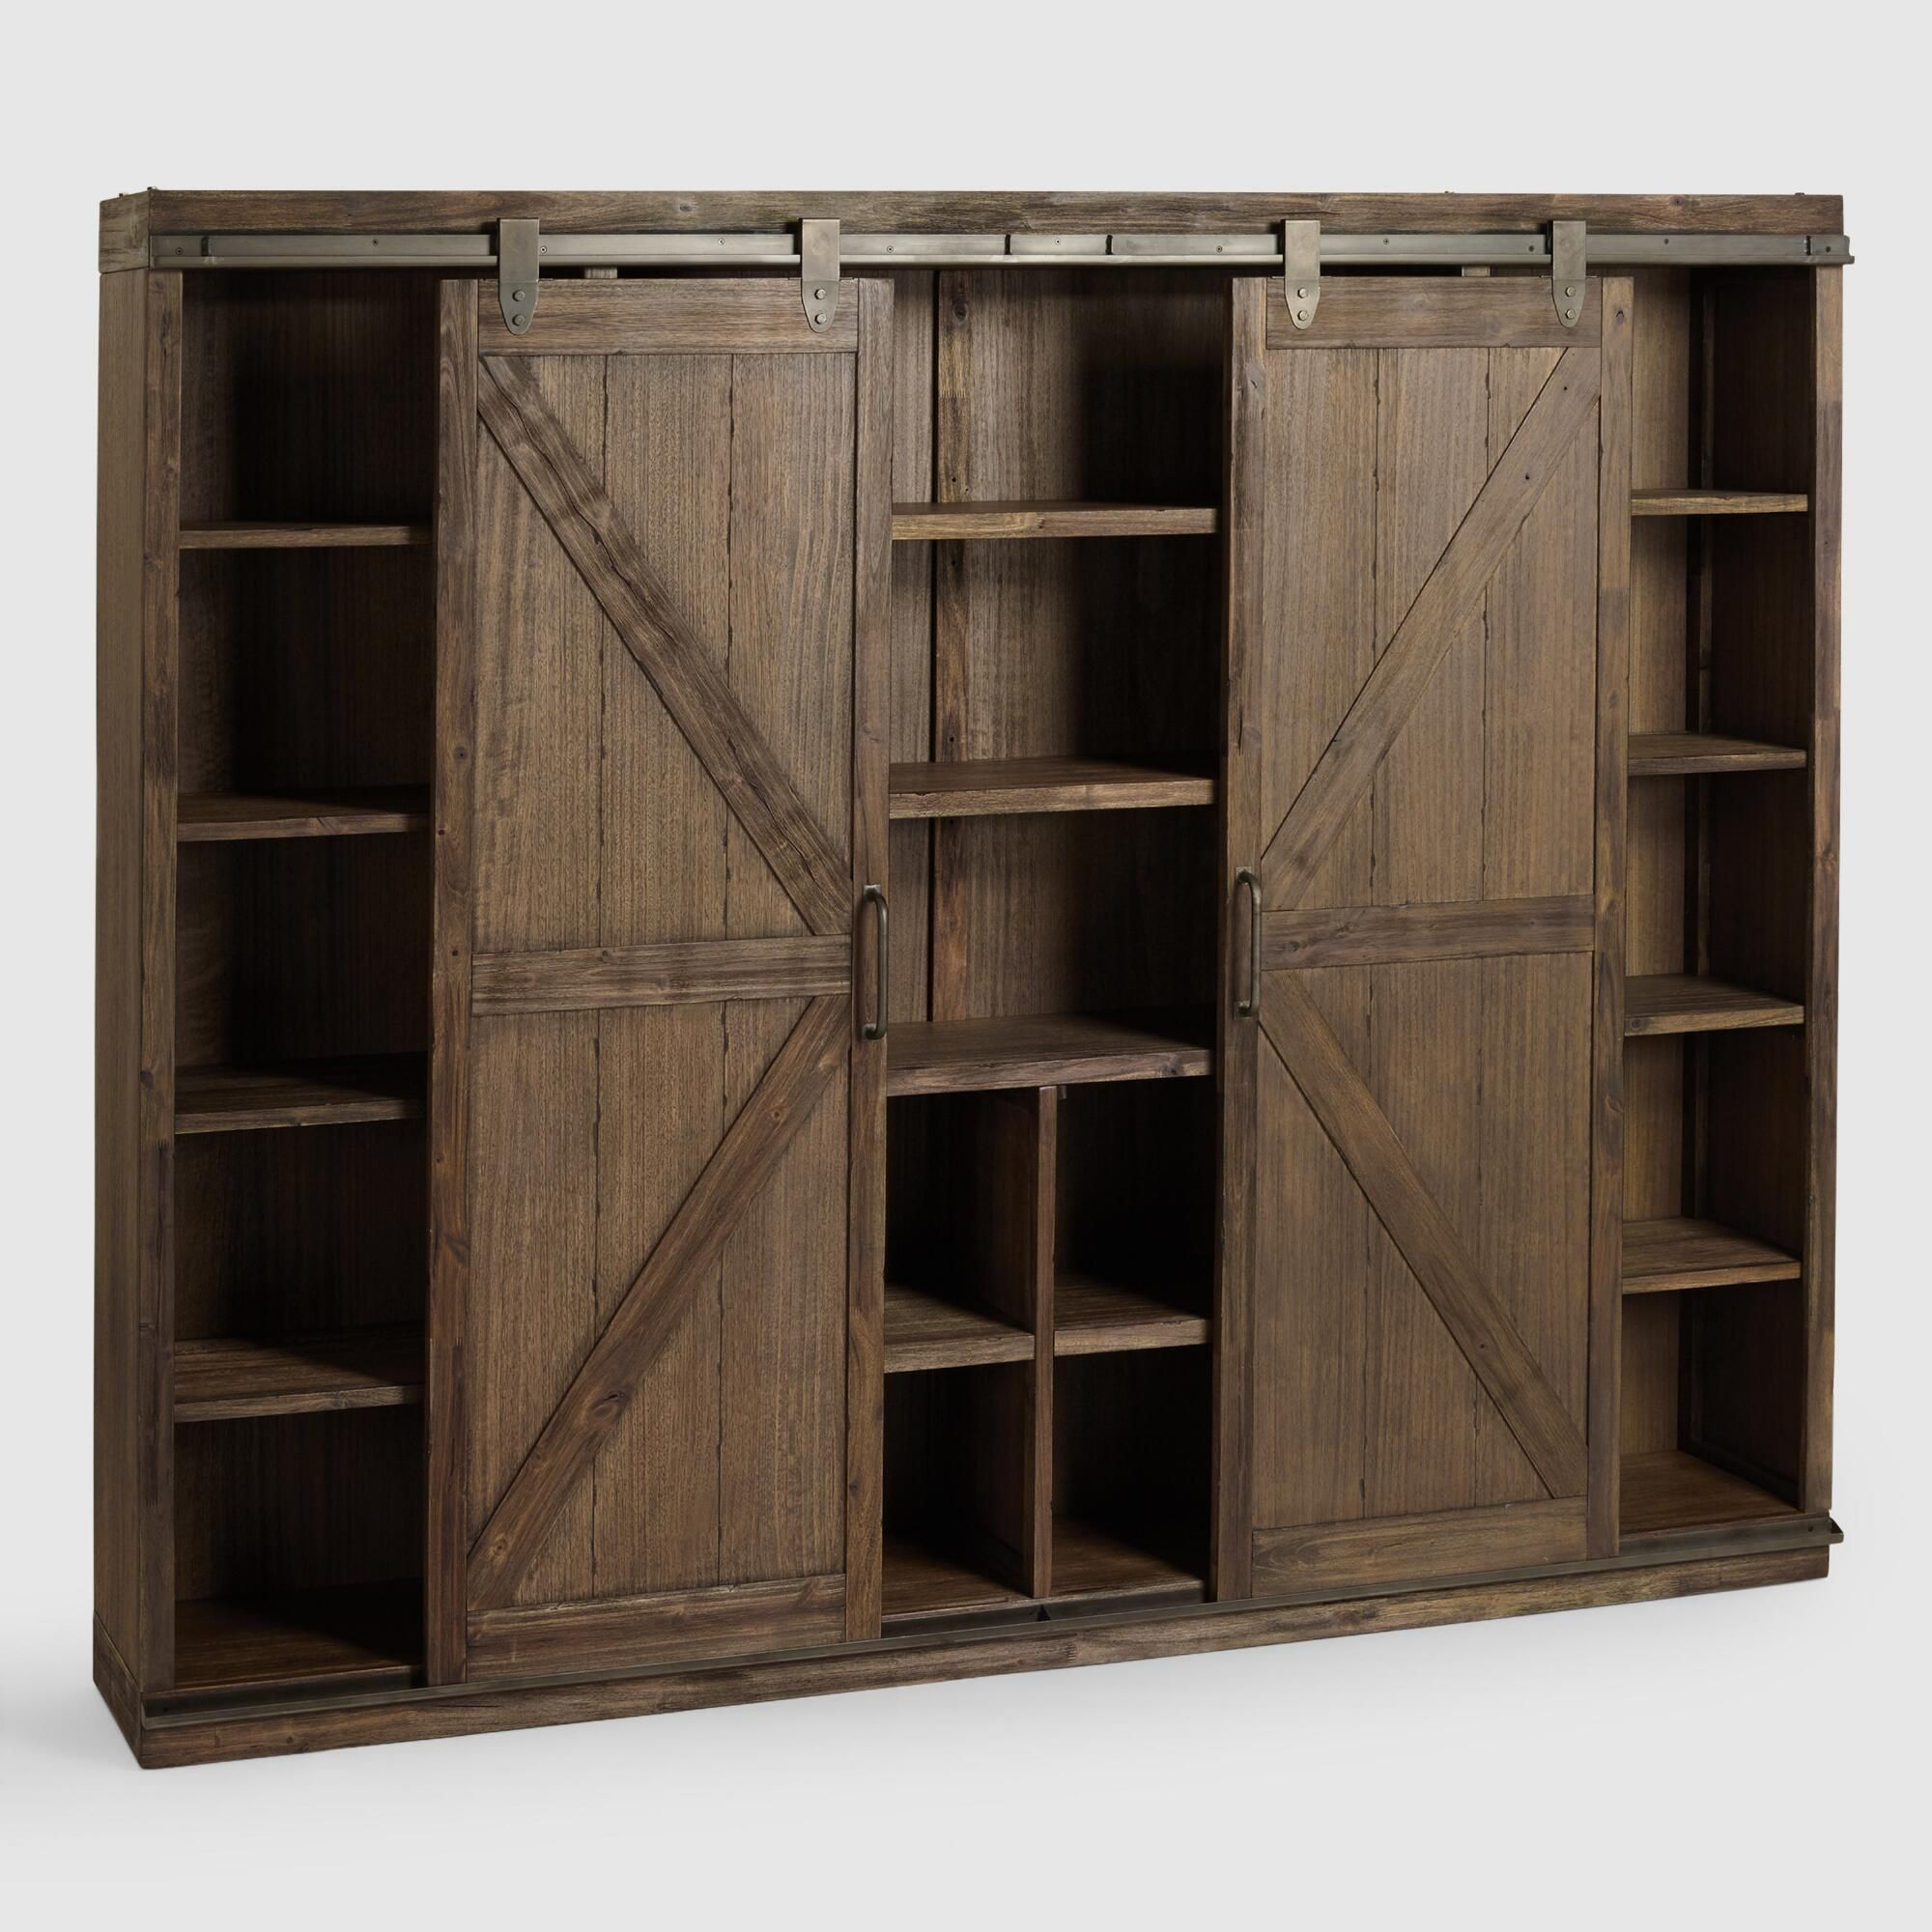 A substantial storage solution with adjustable and